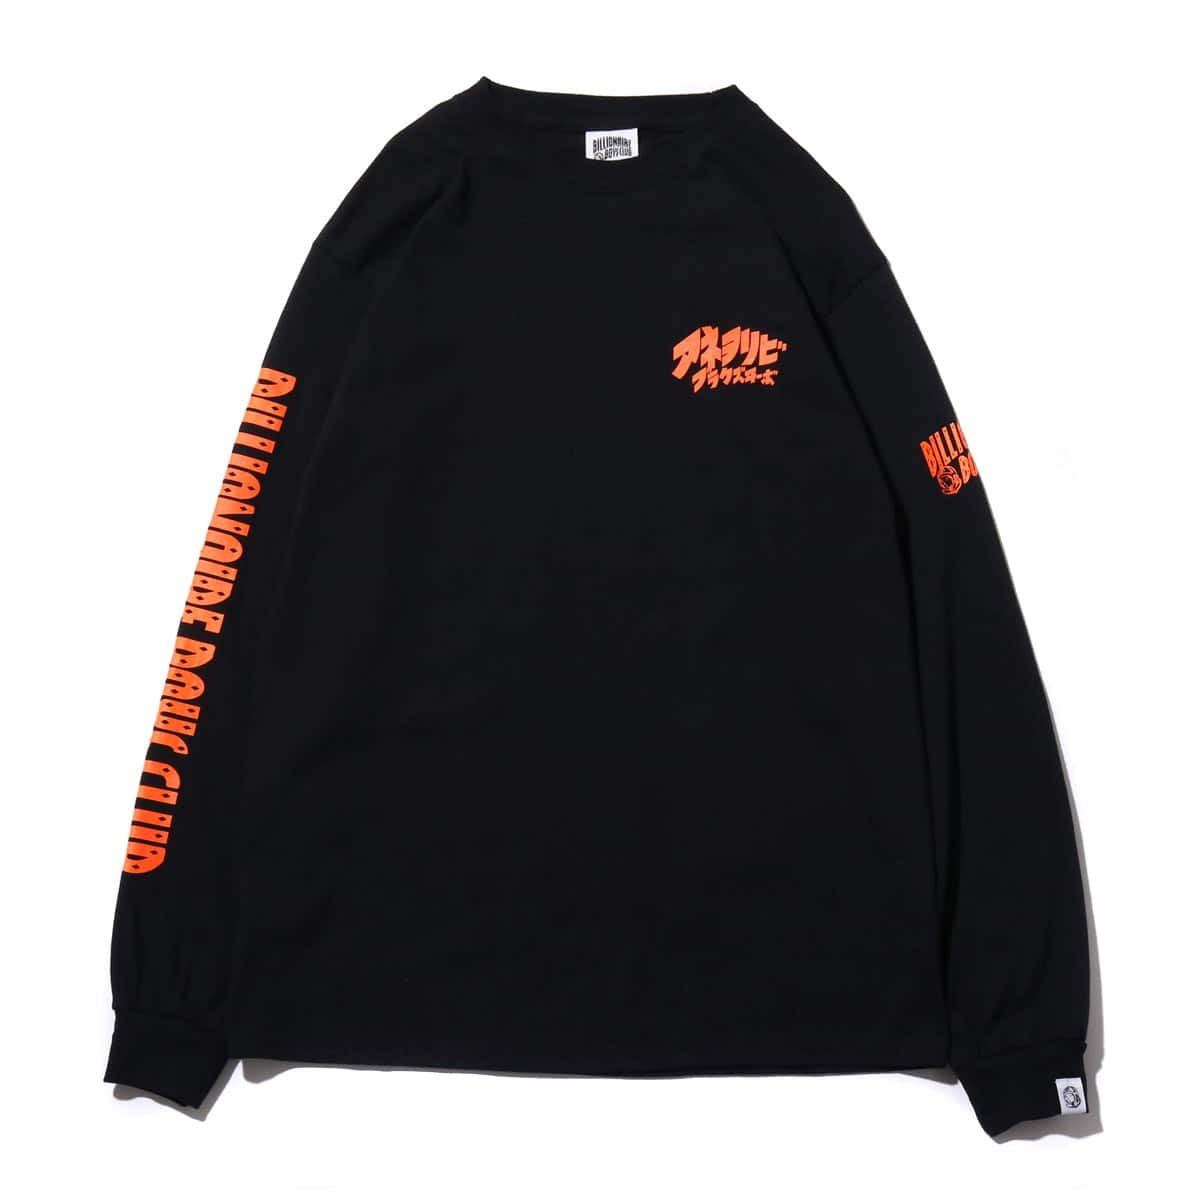 BILLIONAIRE BOYS CLUB アネオリビブラクイーボ L/S TEE  BLACK 18FA-S_photo_large